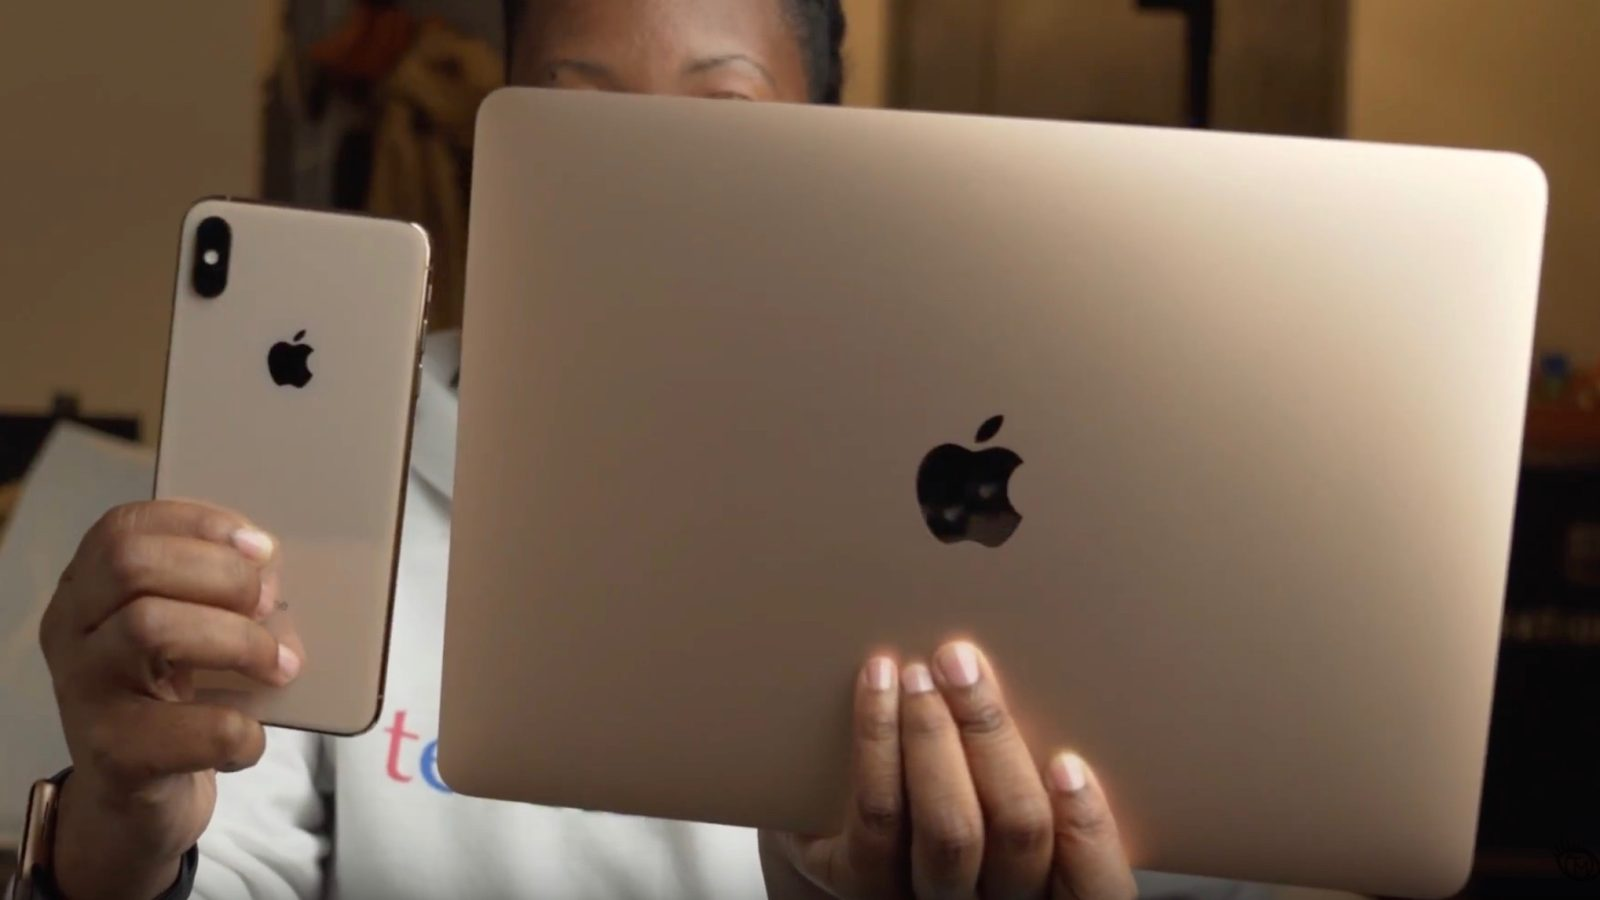 First Retina MacBook Air unboxing videos show color-matched Apple stickers, 30W charger, more